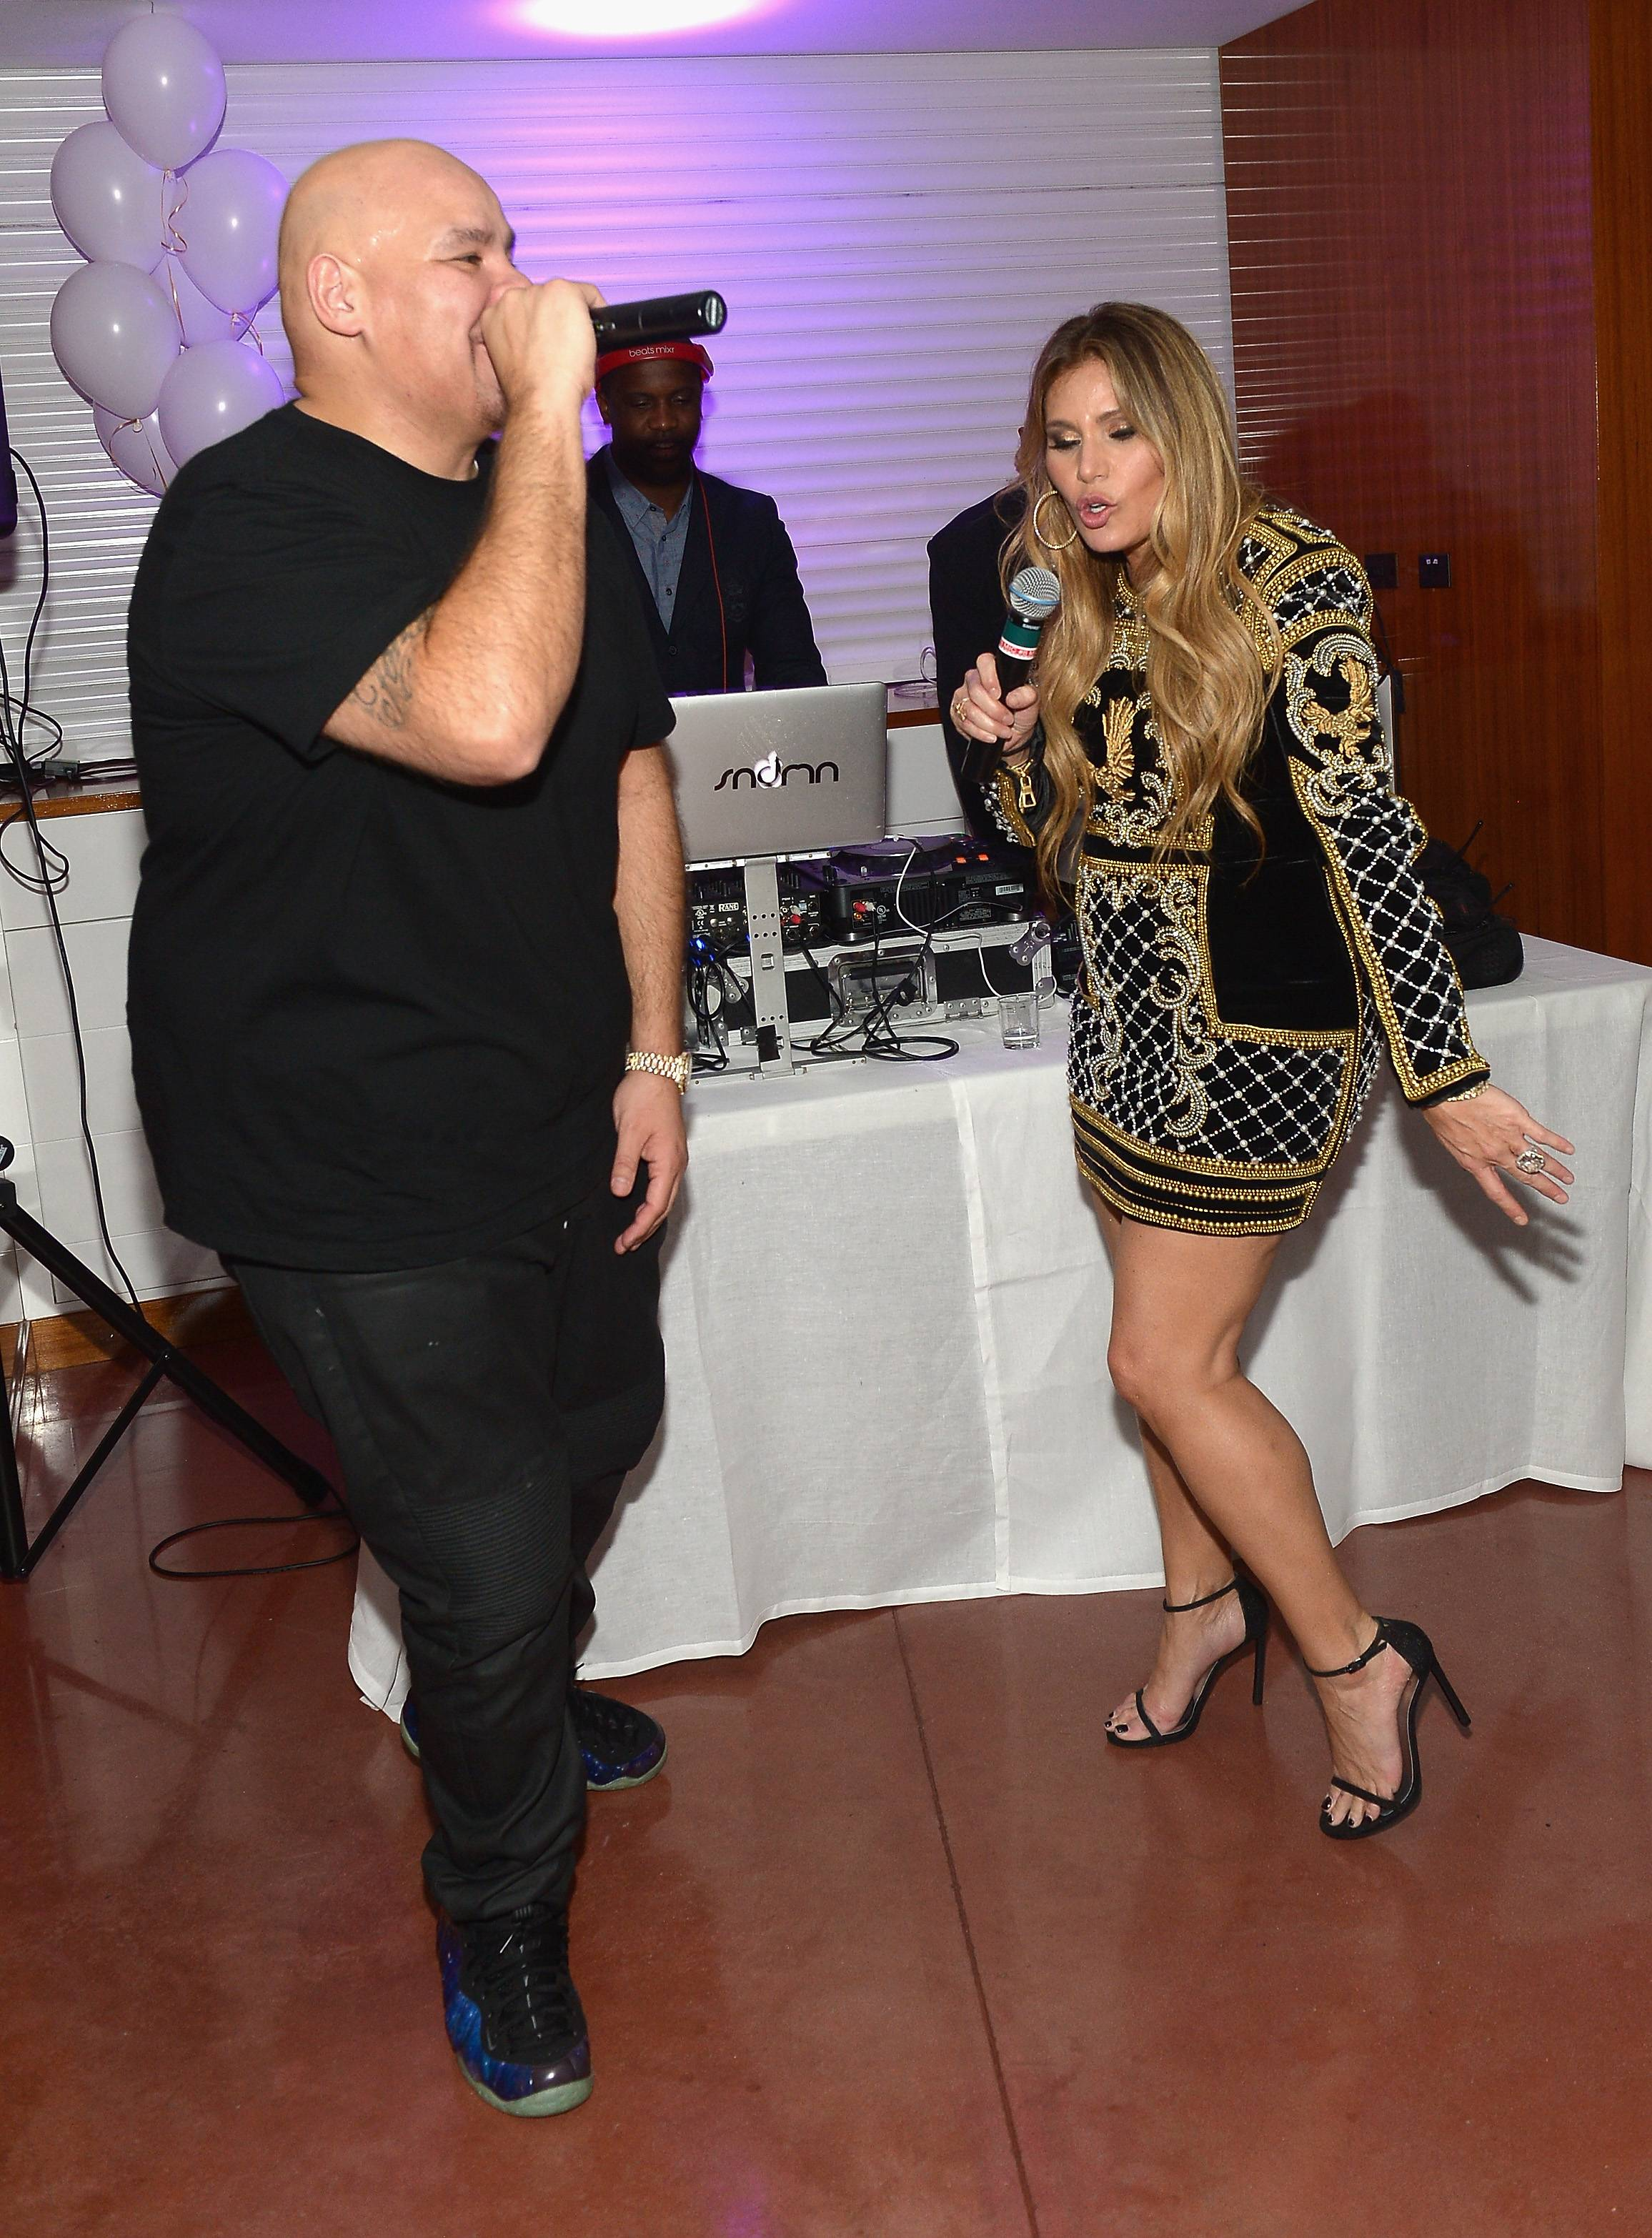 MIAMI, FL - NOVEMBER 21: Fat Joe and Loren Ridinger attend Haute Living celebrates Loren Ridinger's birthday at Cipriani Downtown Miami on November 21, 2015 in Miami, Florida. (Photo by Gustavo Caballero/Getty Images for Haute Living)